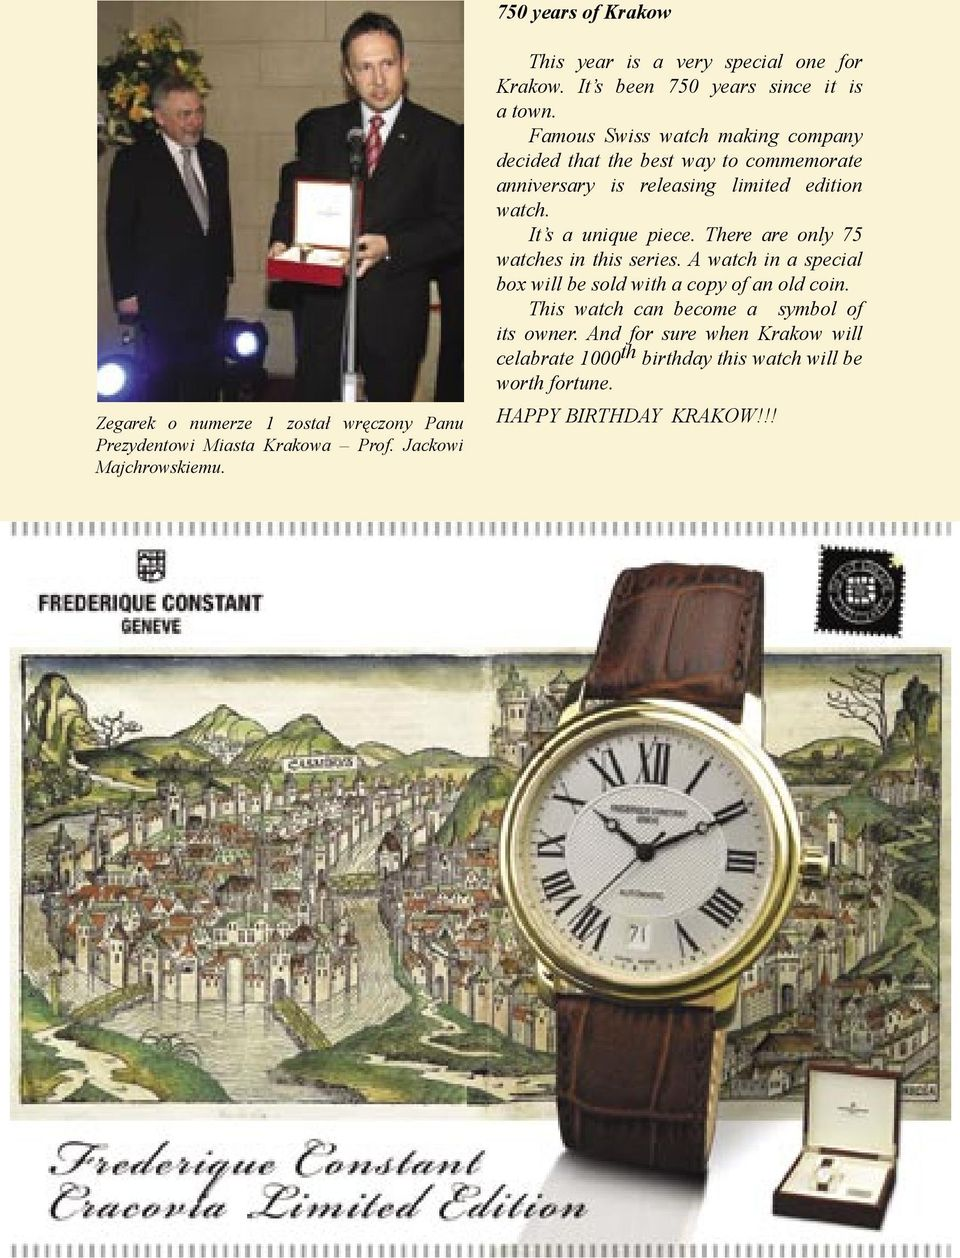 Famous Swiss watch making company decided that the best way to commemorate anniversary is releasing limited edition watch. It s a unique piece.